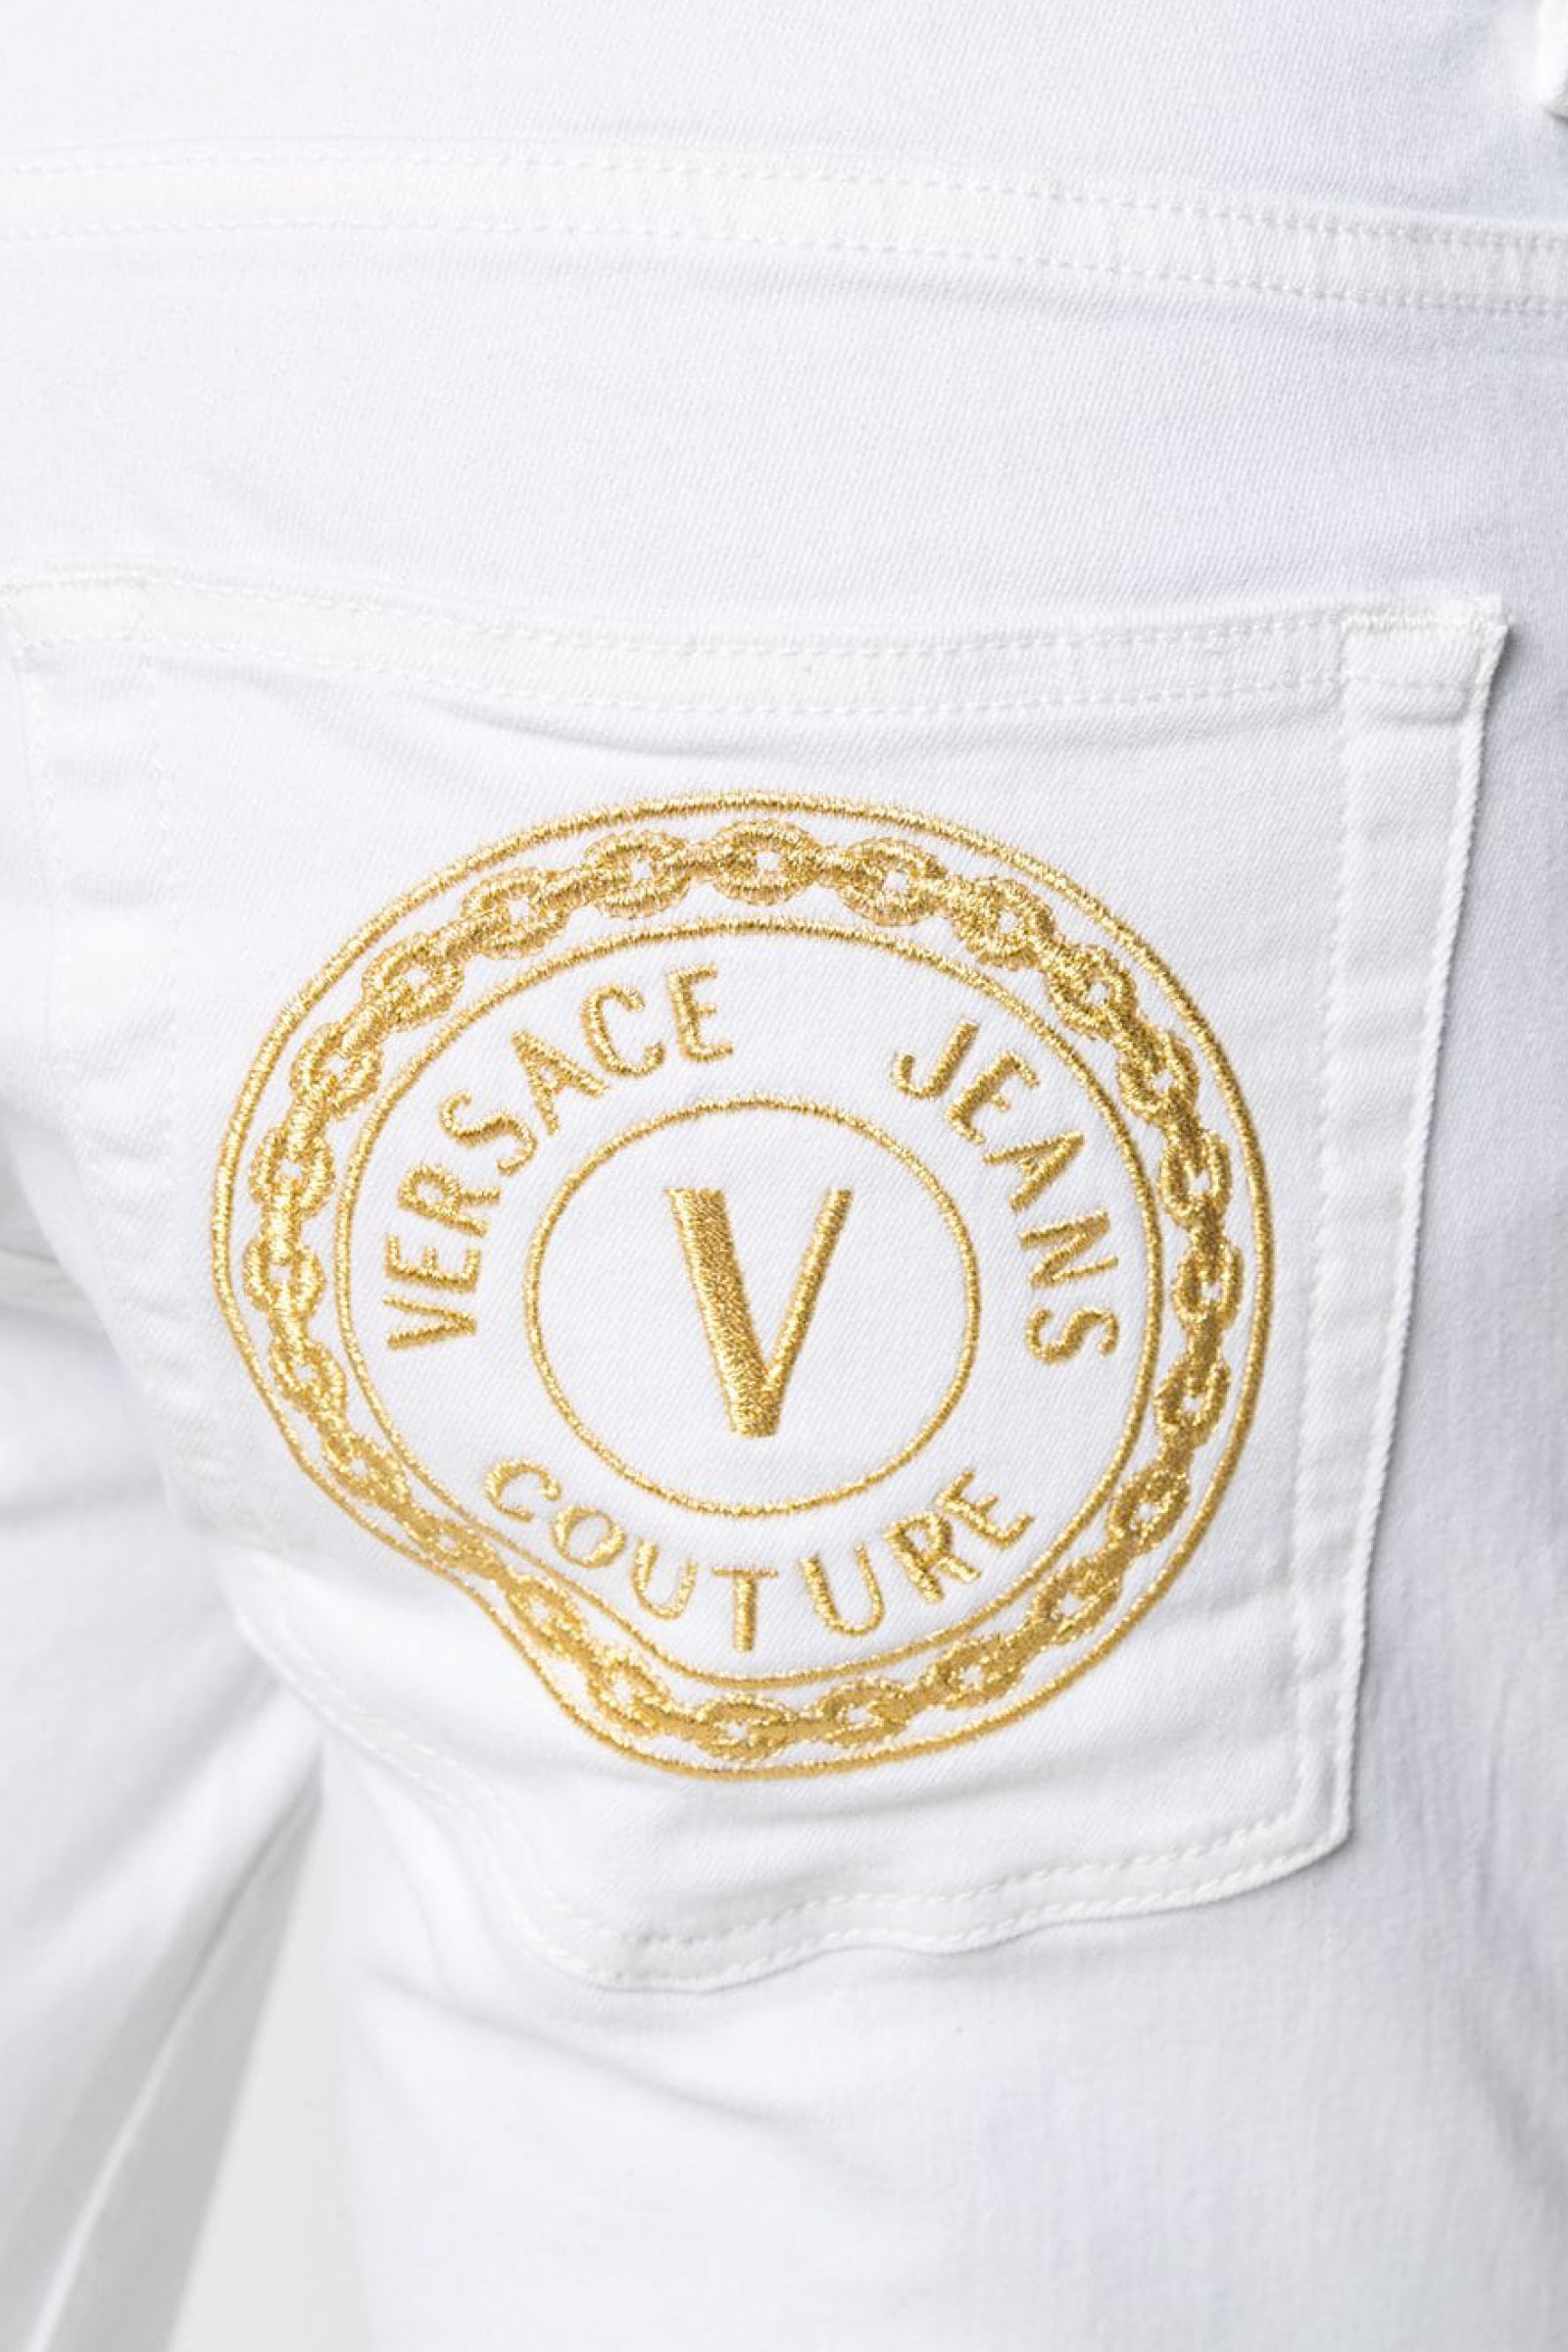 VERSACE JEANS COUTURE Jeans Uomo VERSACE JEANS COUTURE | Pantalone | A2GWA0S5605013